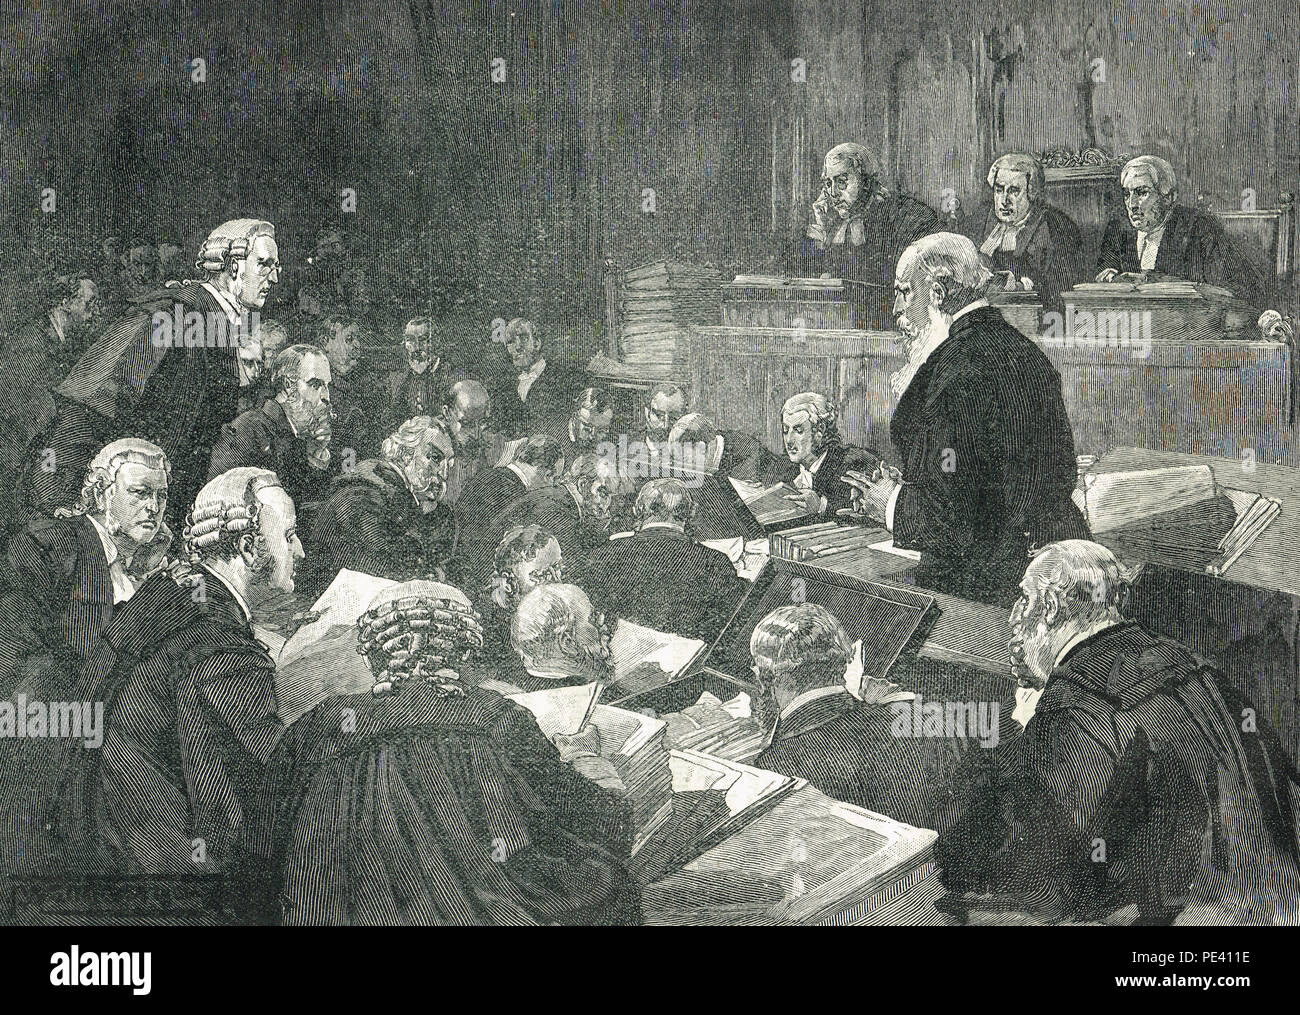 Richard Pigott, breaking down under cross examination, during the Parnell Commission, February 1889 - Stock Image